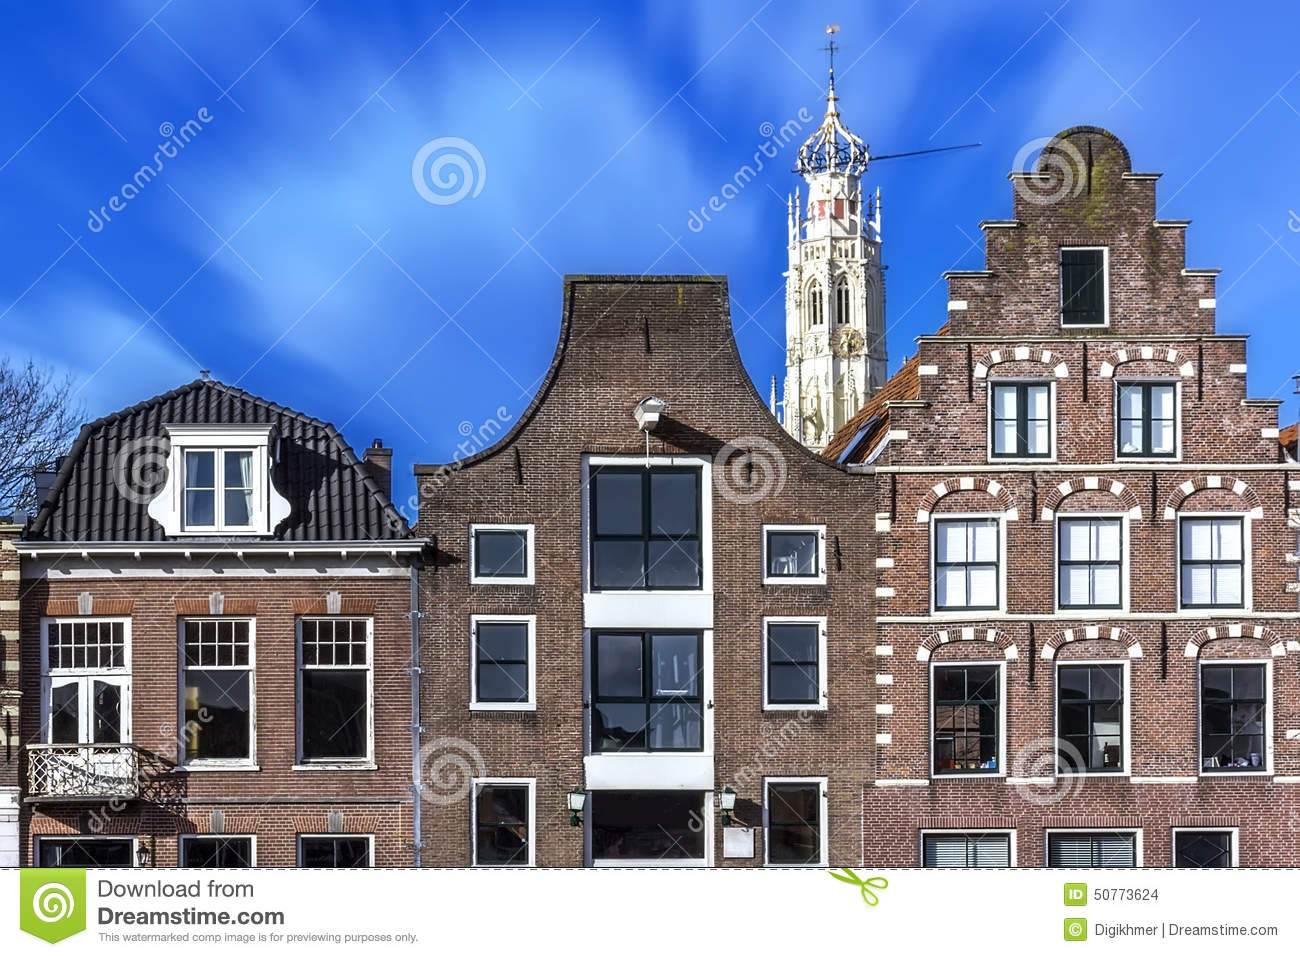 Maison flamande et architecture photo stock image 50773624 for Architecture flamande